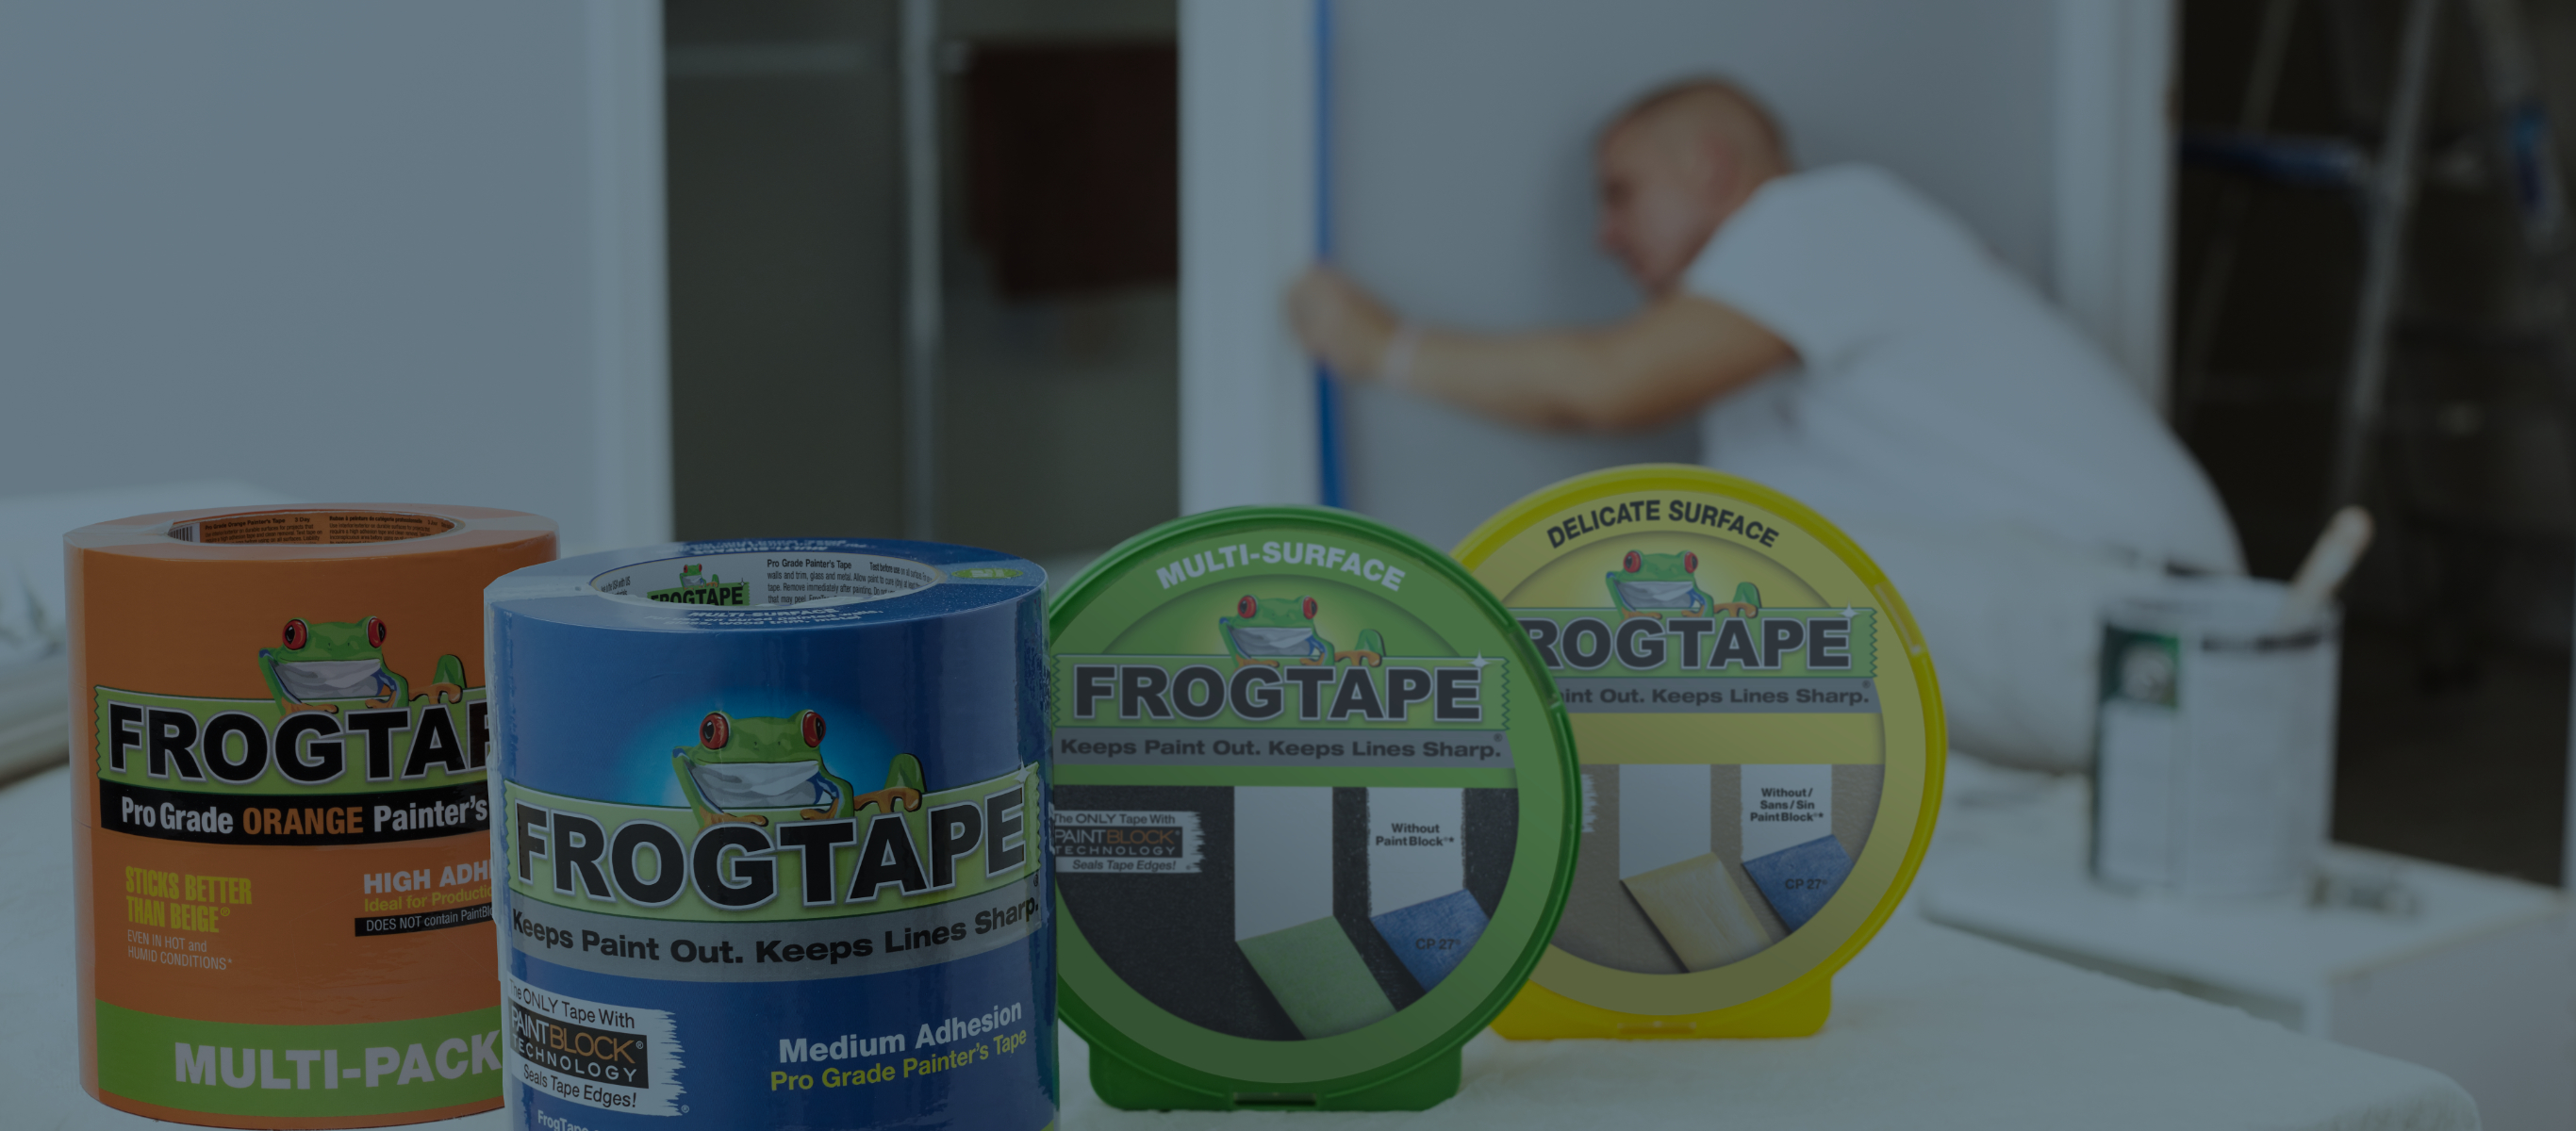 FrogTape® family of products.